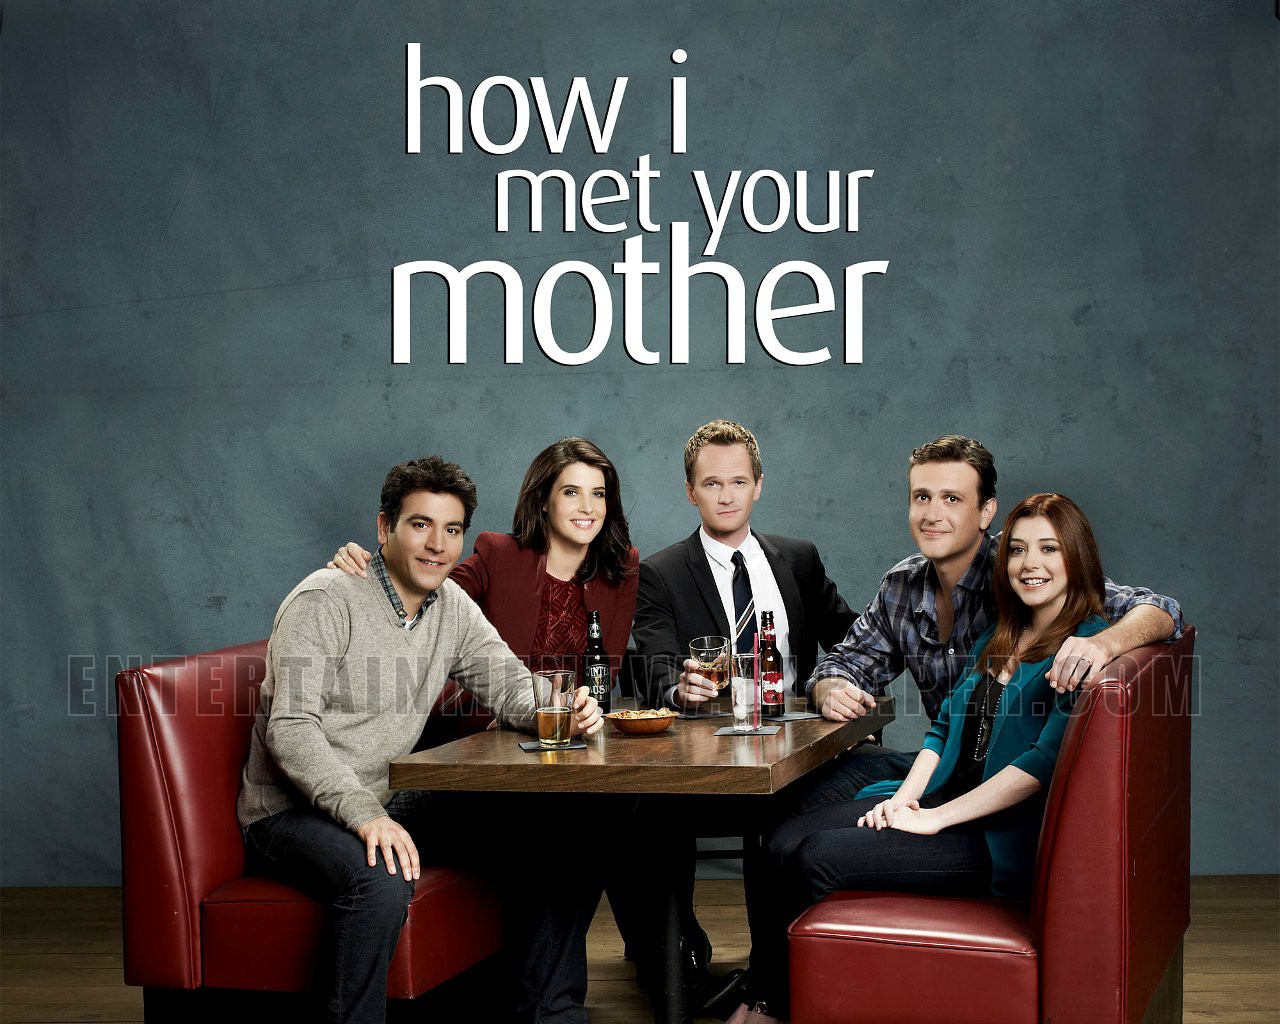 How I Met Your Mother Wallpapers Just Good Vibe 1280x1024